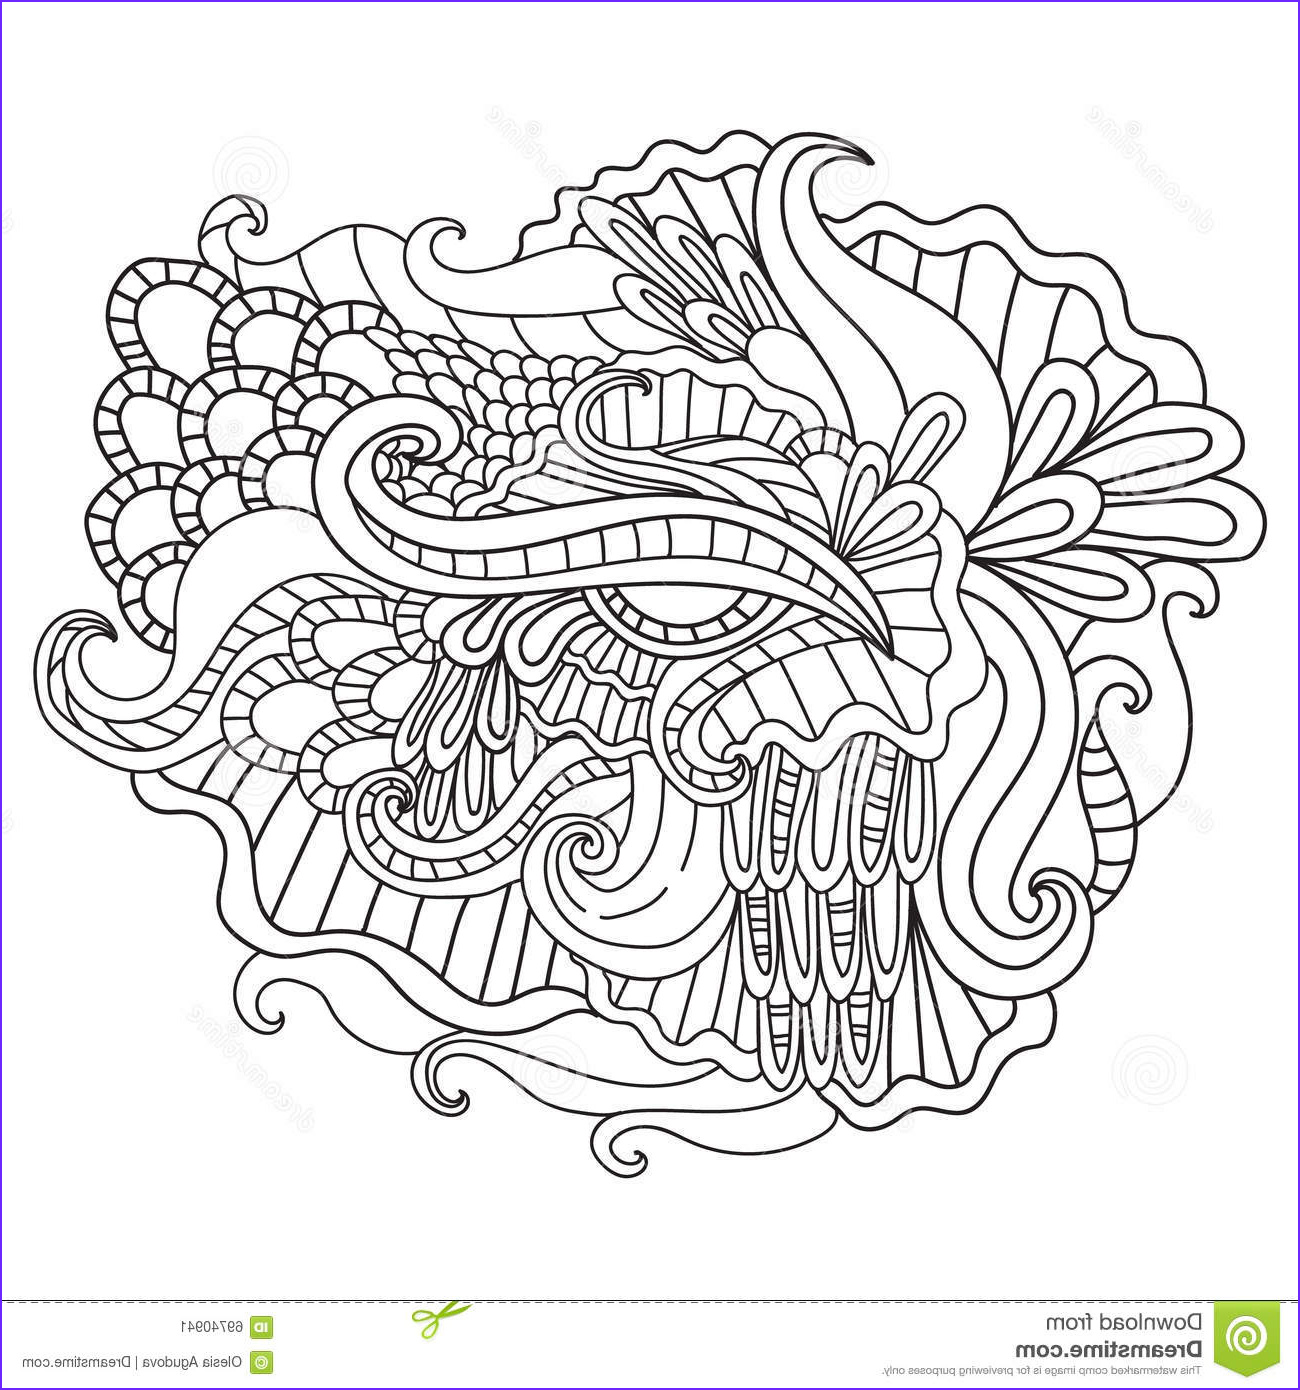 stock illustration coloring pages adults decorative hand drawn doodle nature ornamental curl vector sketchy pattern book image